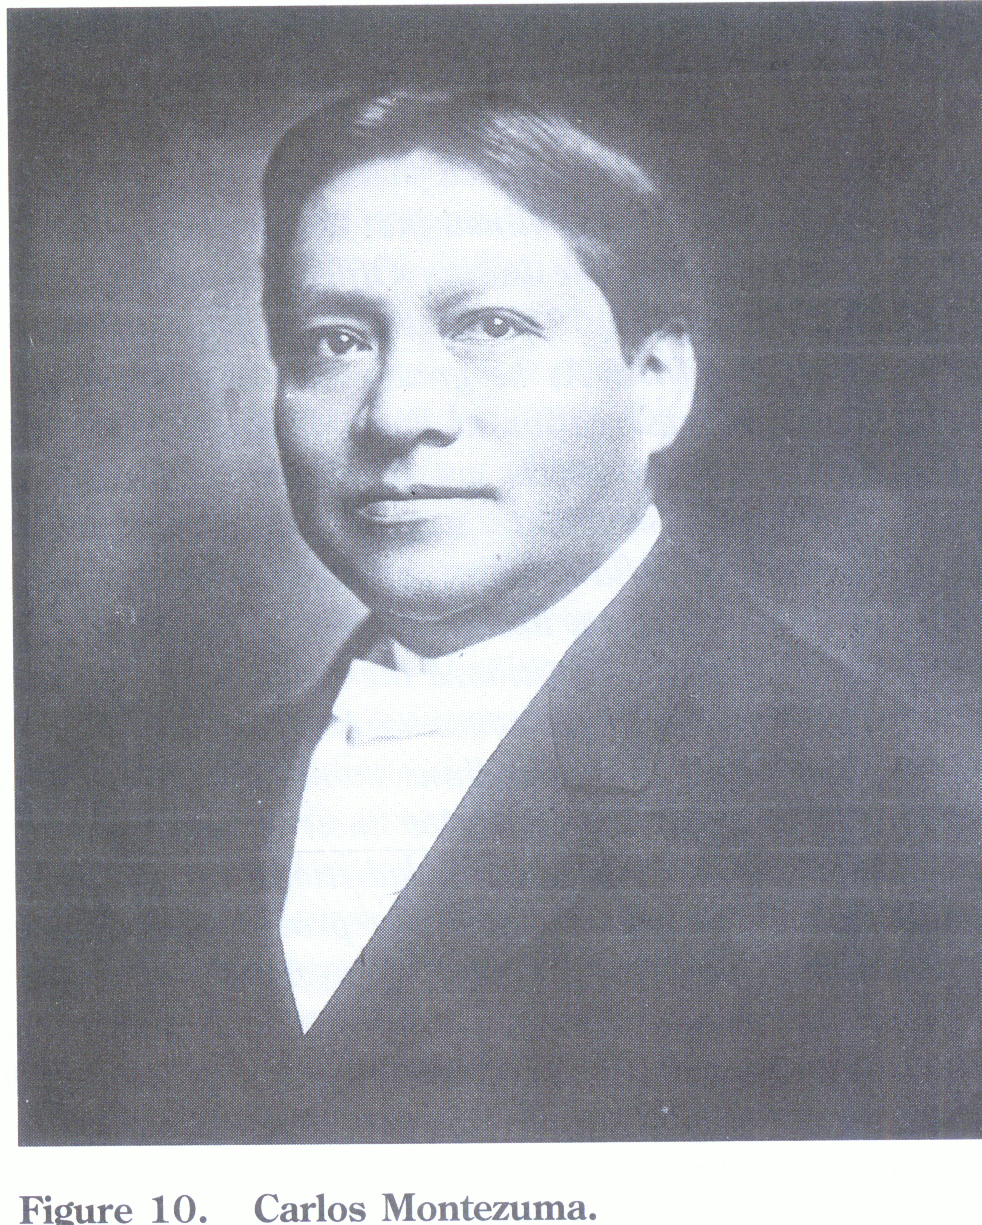 Carlos Montezuma, 1896 Photographic reproduction: From collections of the National Anthropological Archives, Smithsonian Institution.